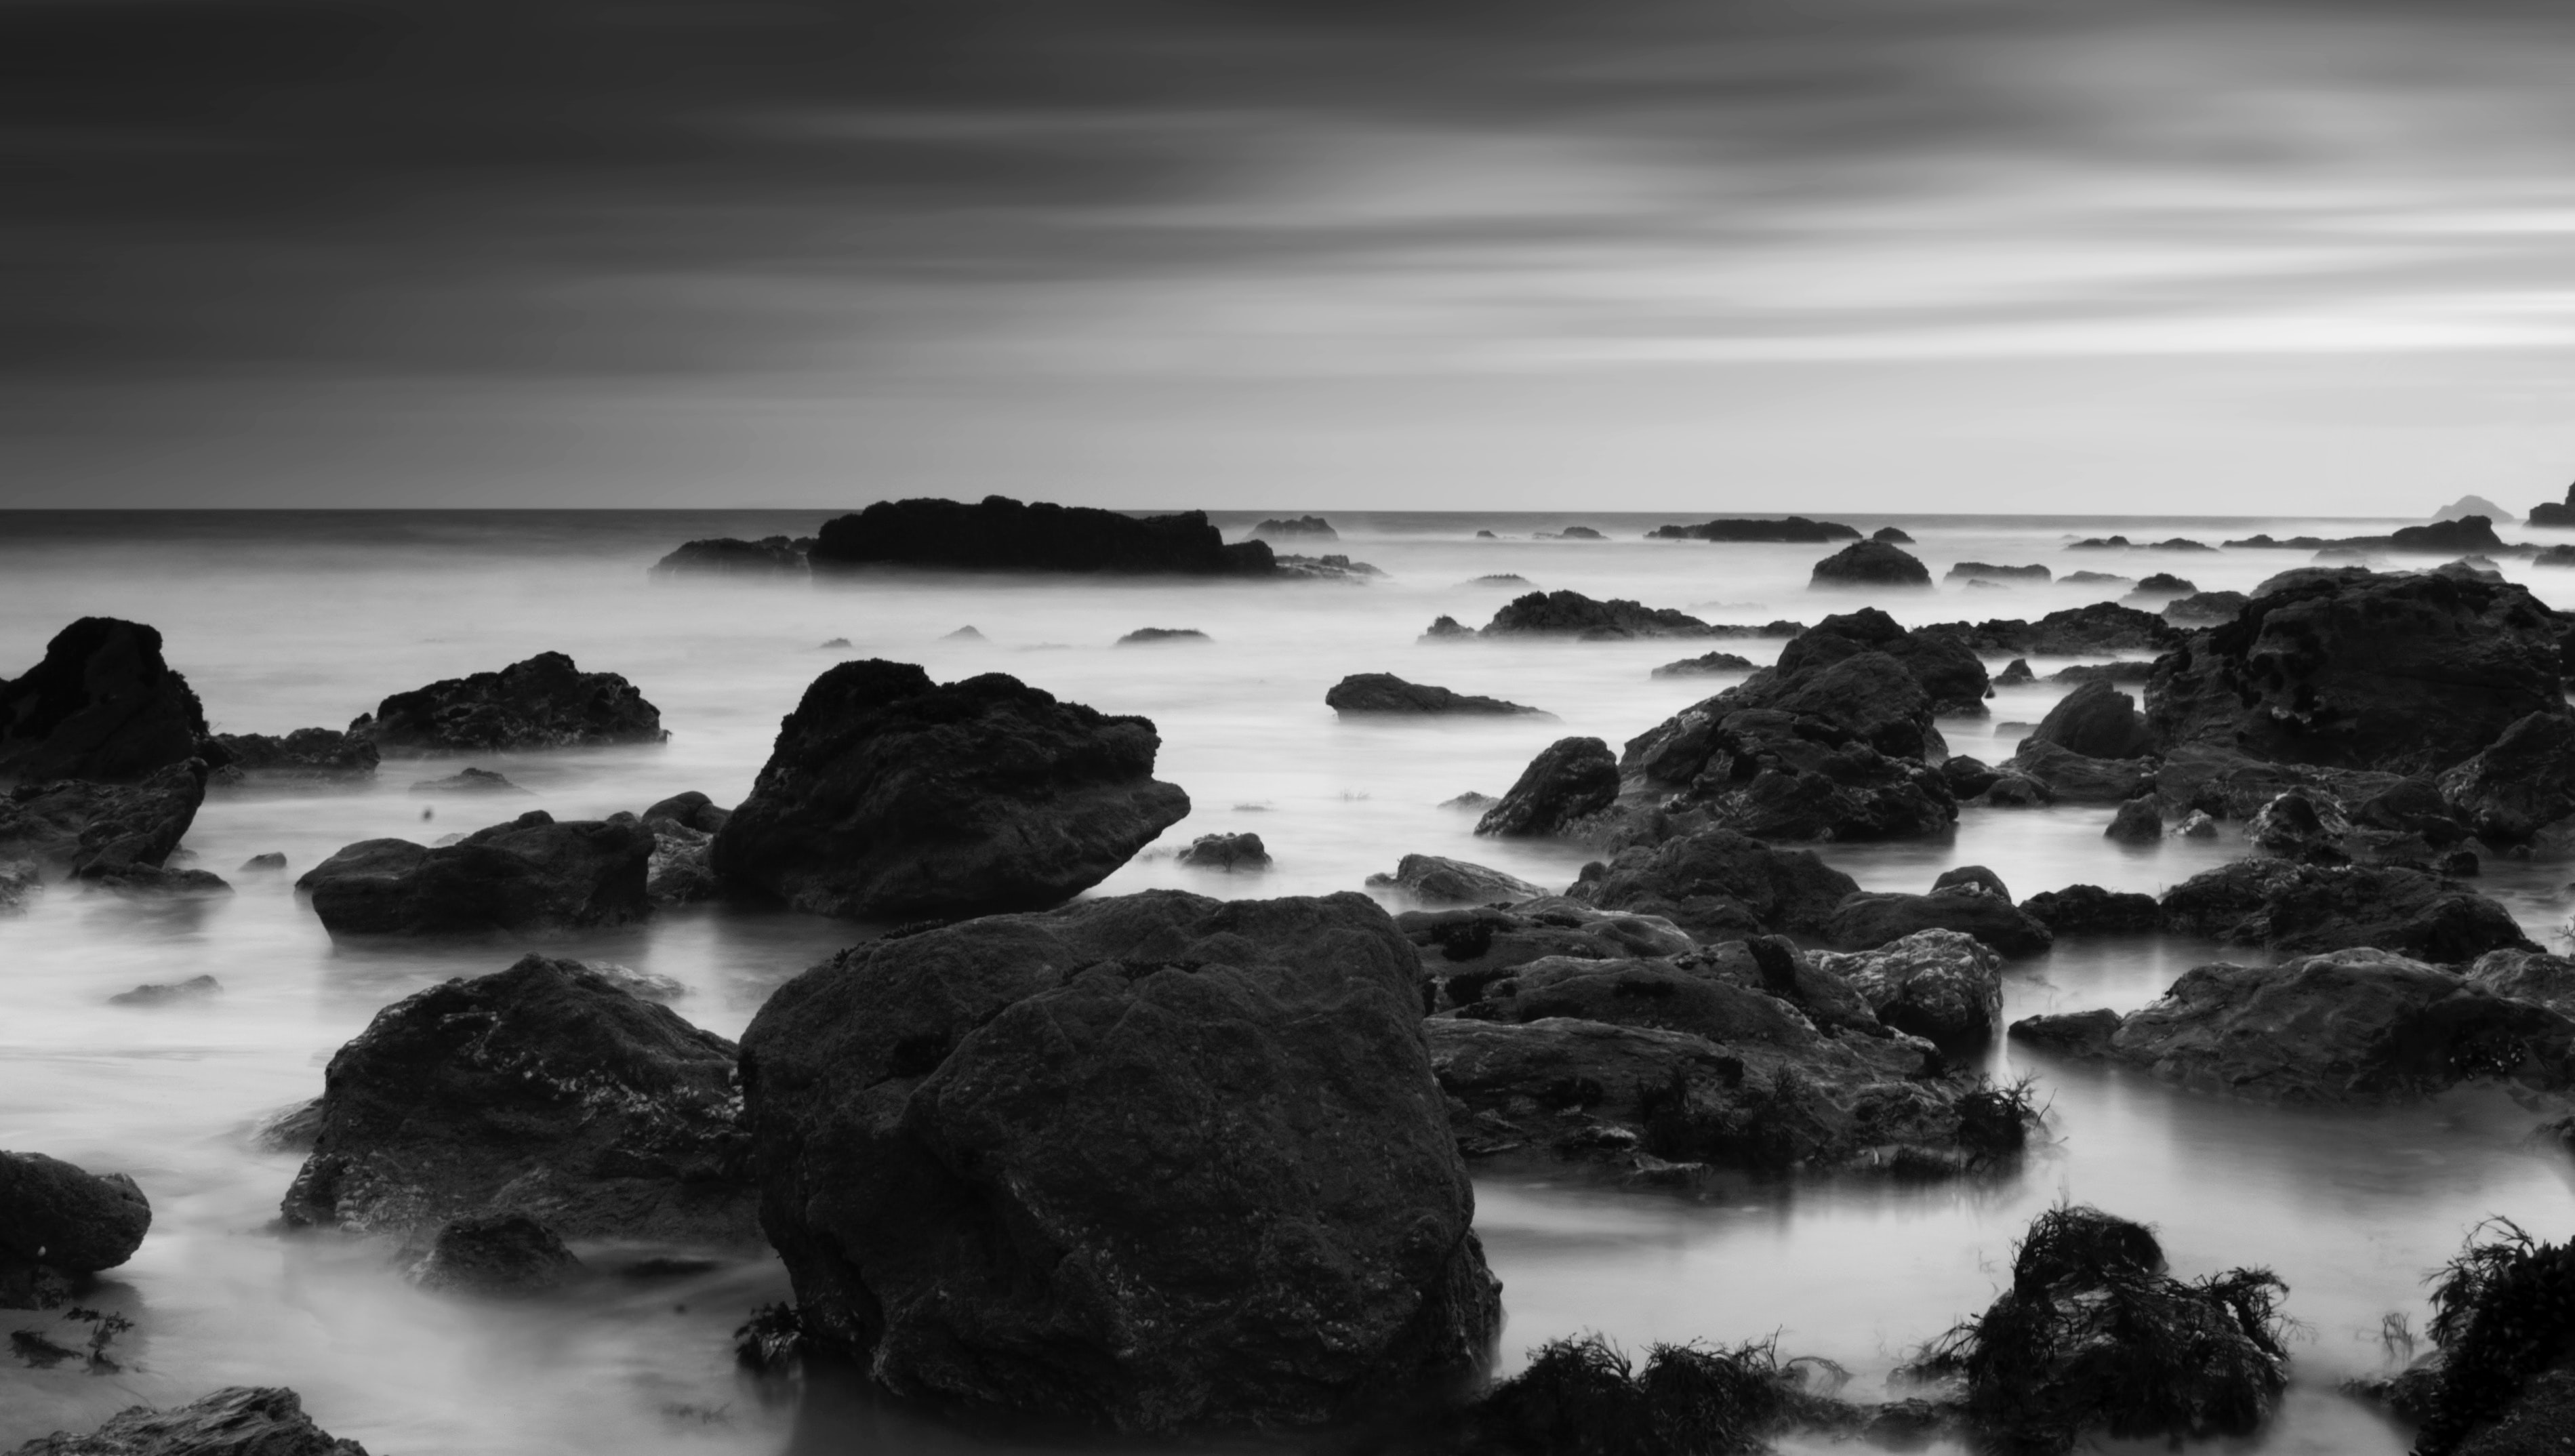 grayscale photography of rocks on body of water